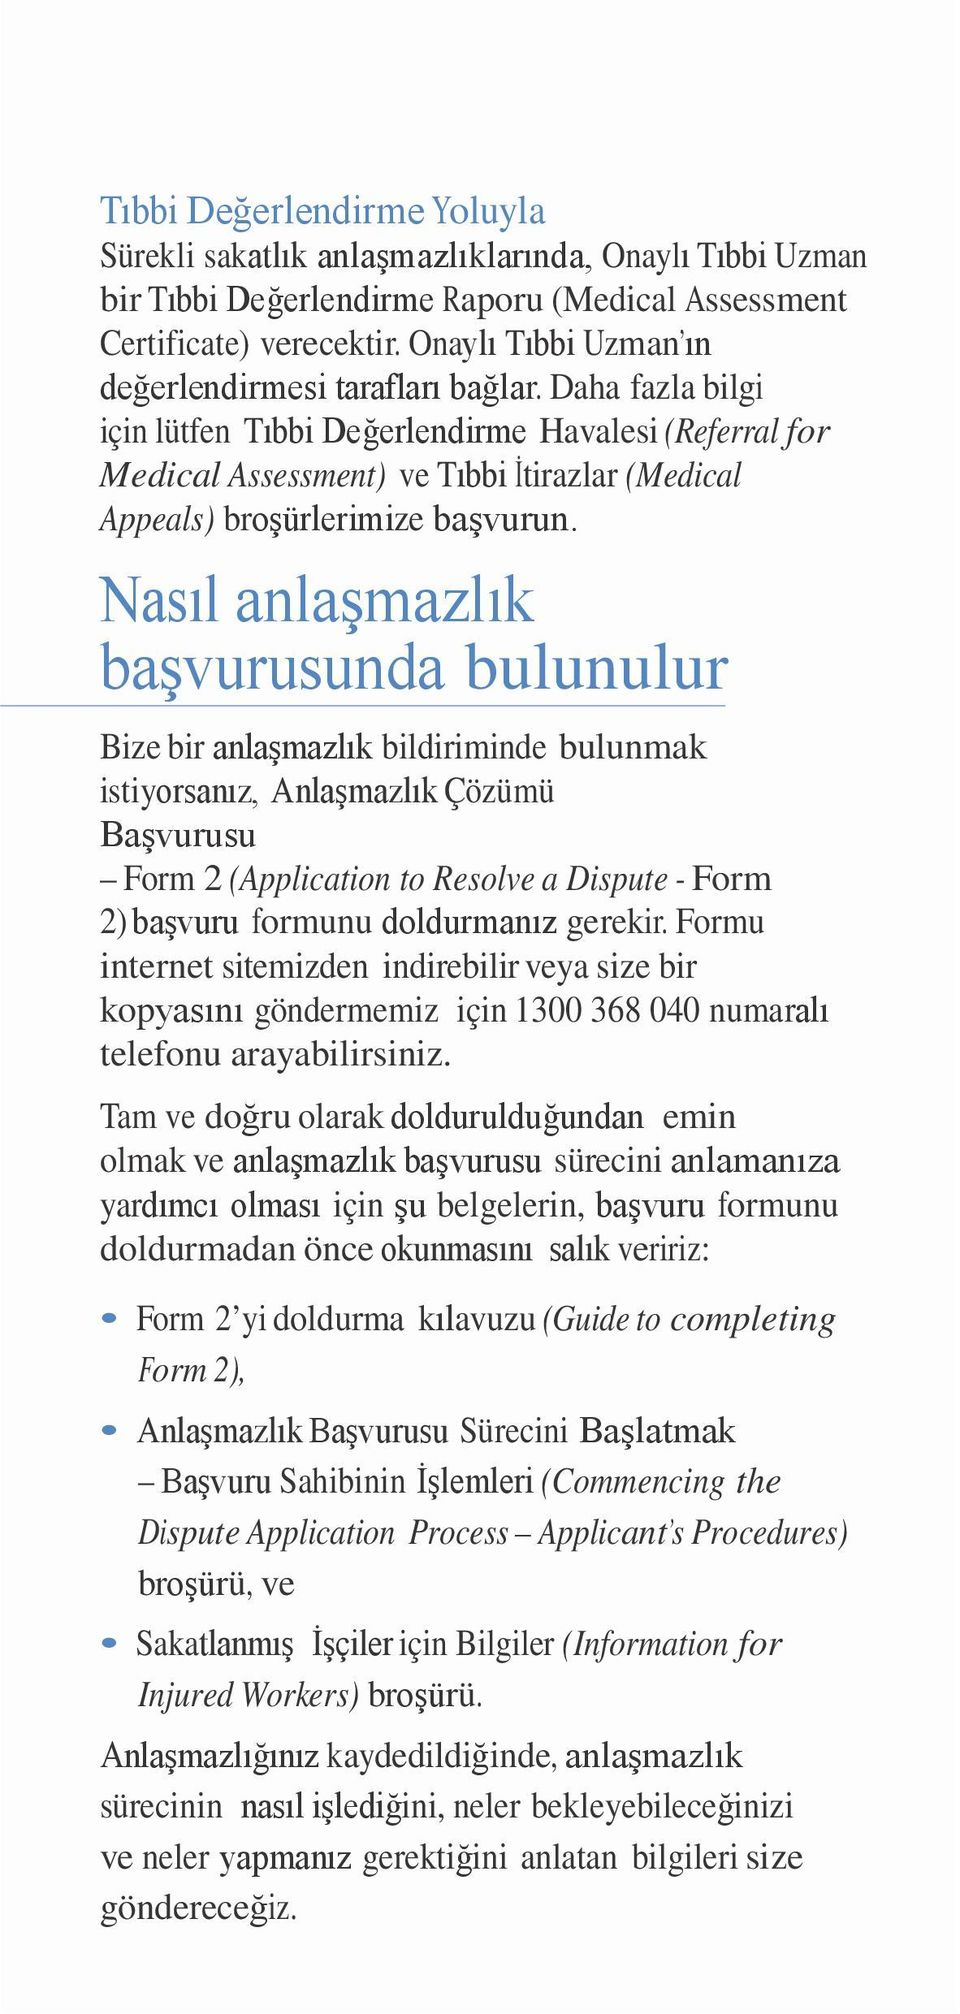 Daha fazla bilgi için lütfen Tıbbi Değerlendirme Havalesi (Referral for Medical Assessment) ve Tıbbi İtirazlar (Medical Appeals) broşürlerimize başvurun.